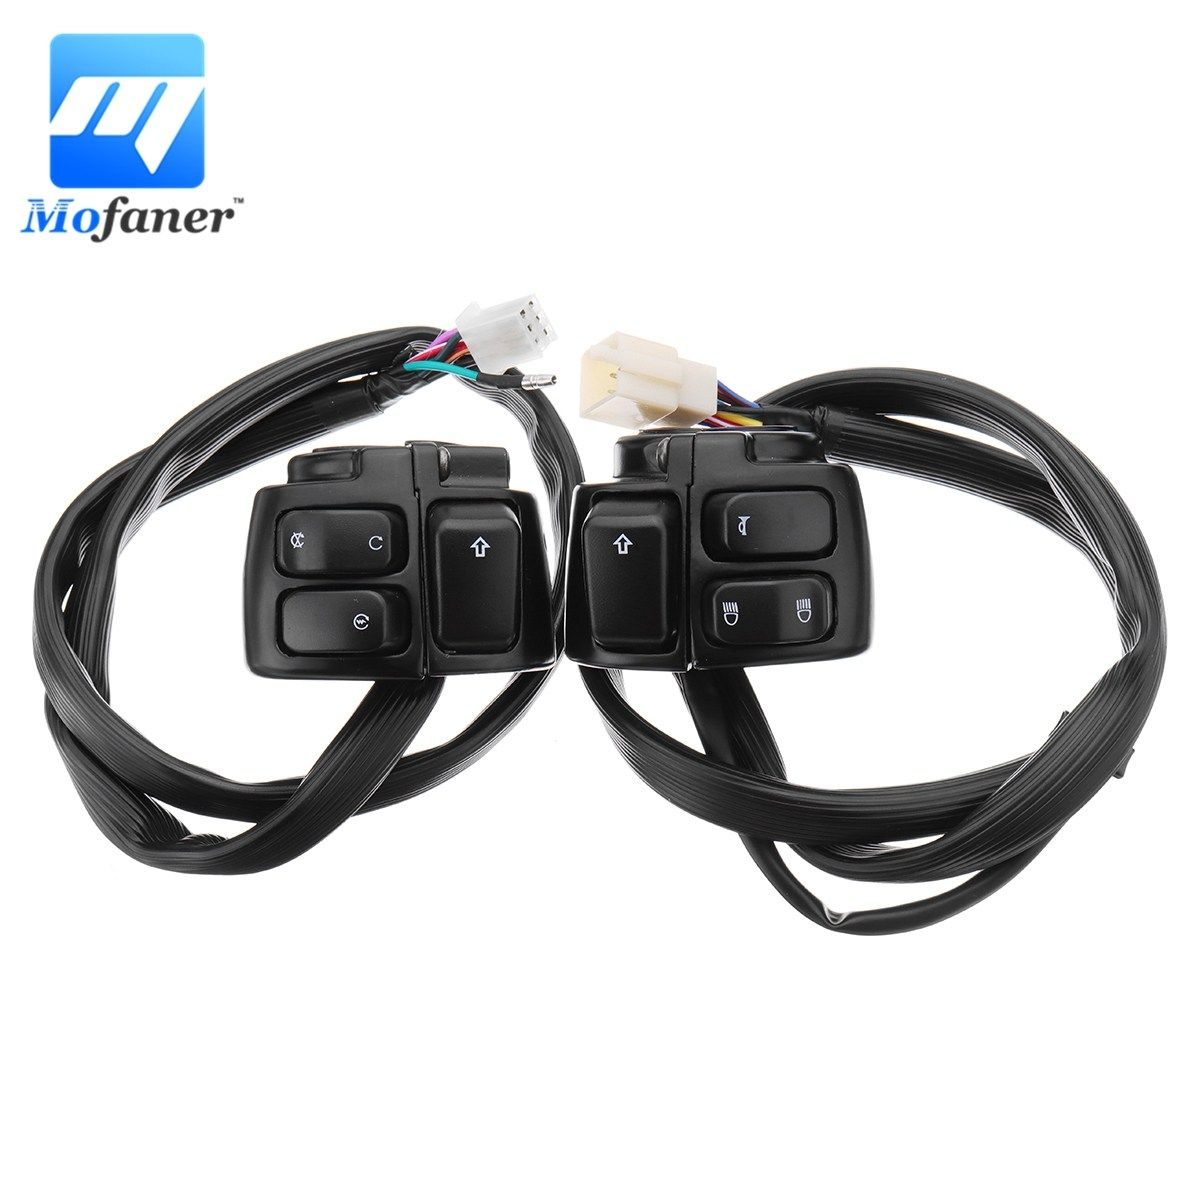 1 Pair Motorcycle 125mm Handlebar Control Switch Turn Signal Switch Button With Wiring Harness For Harley